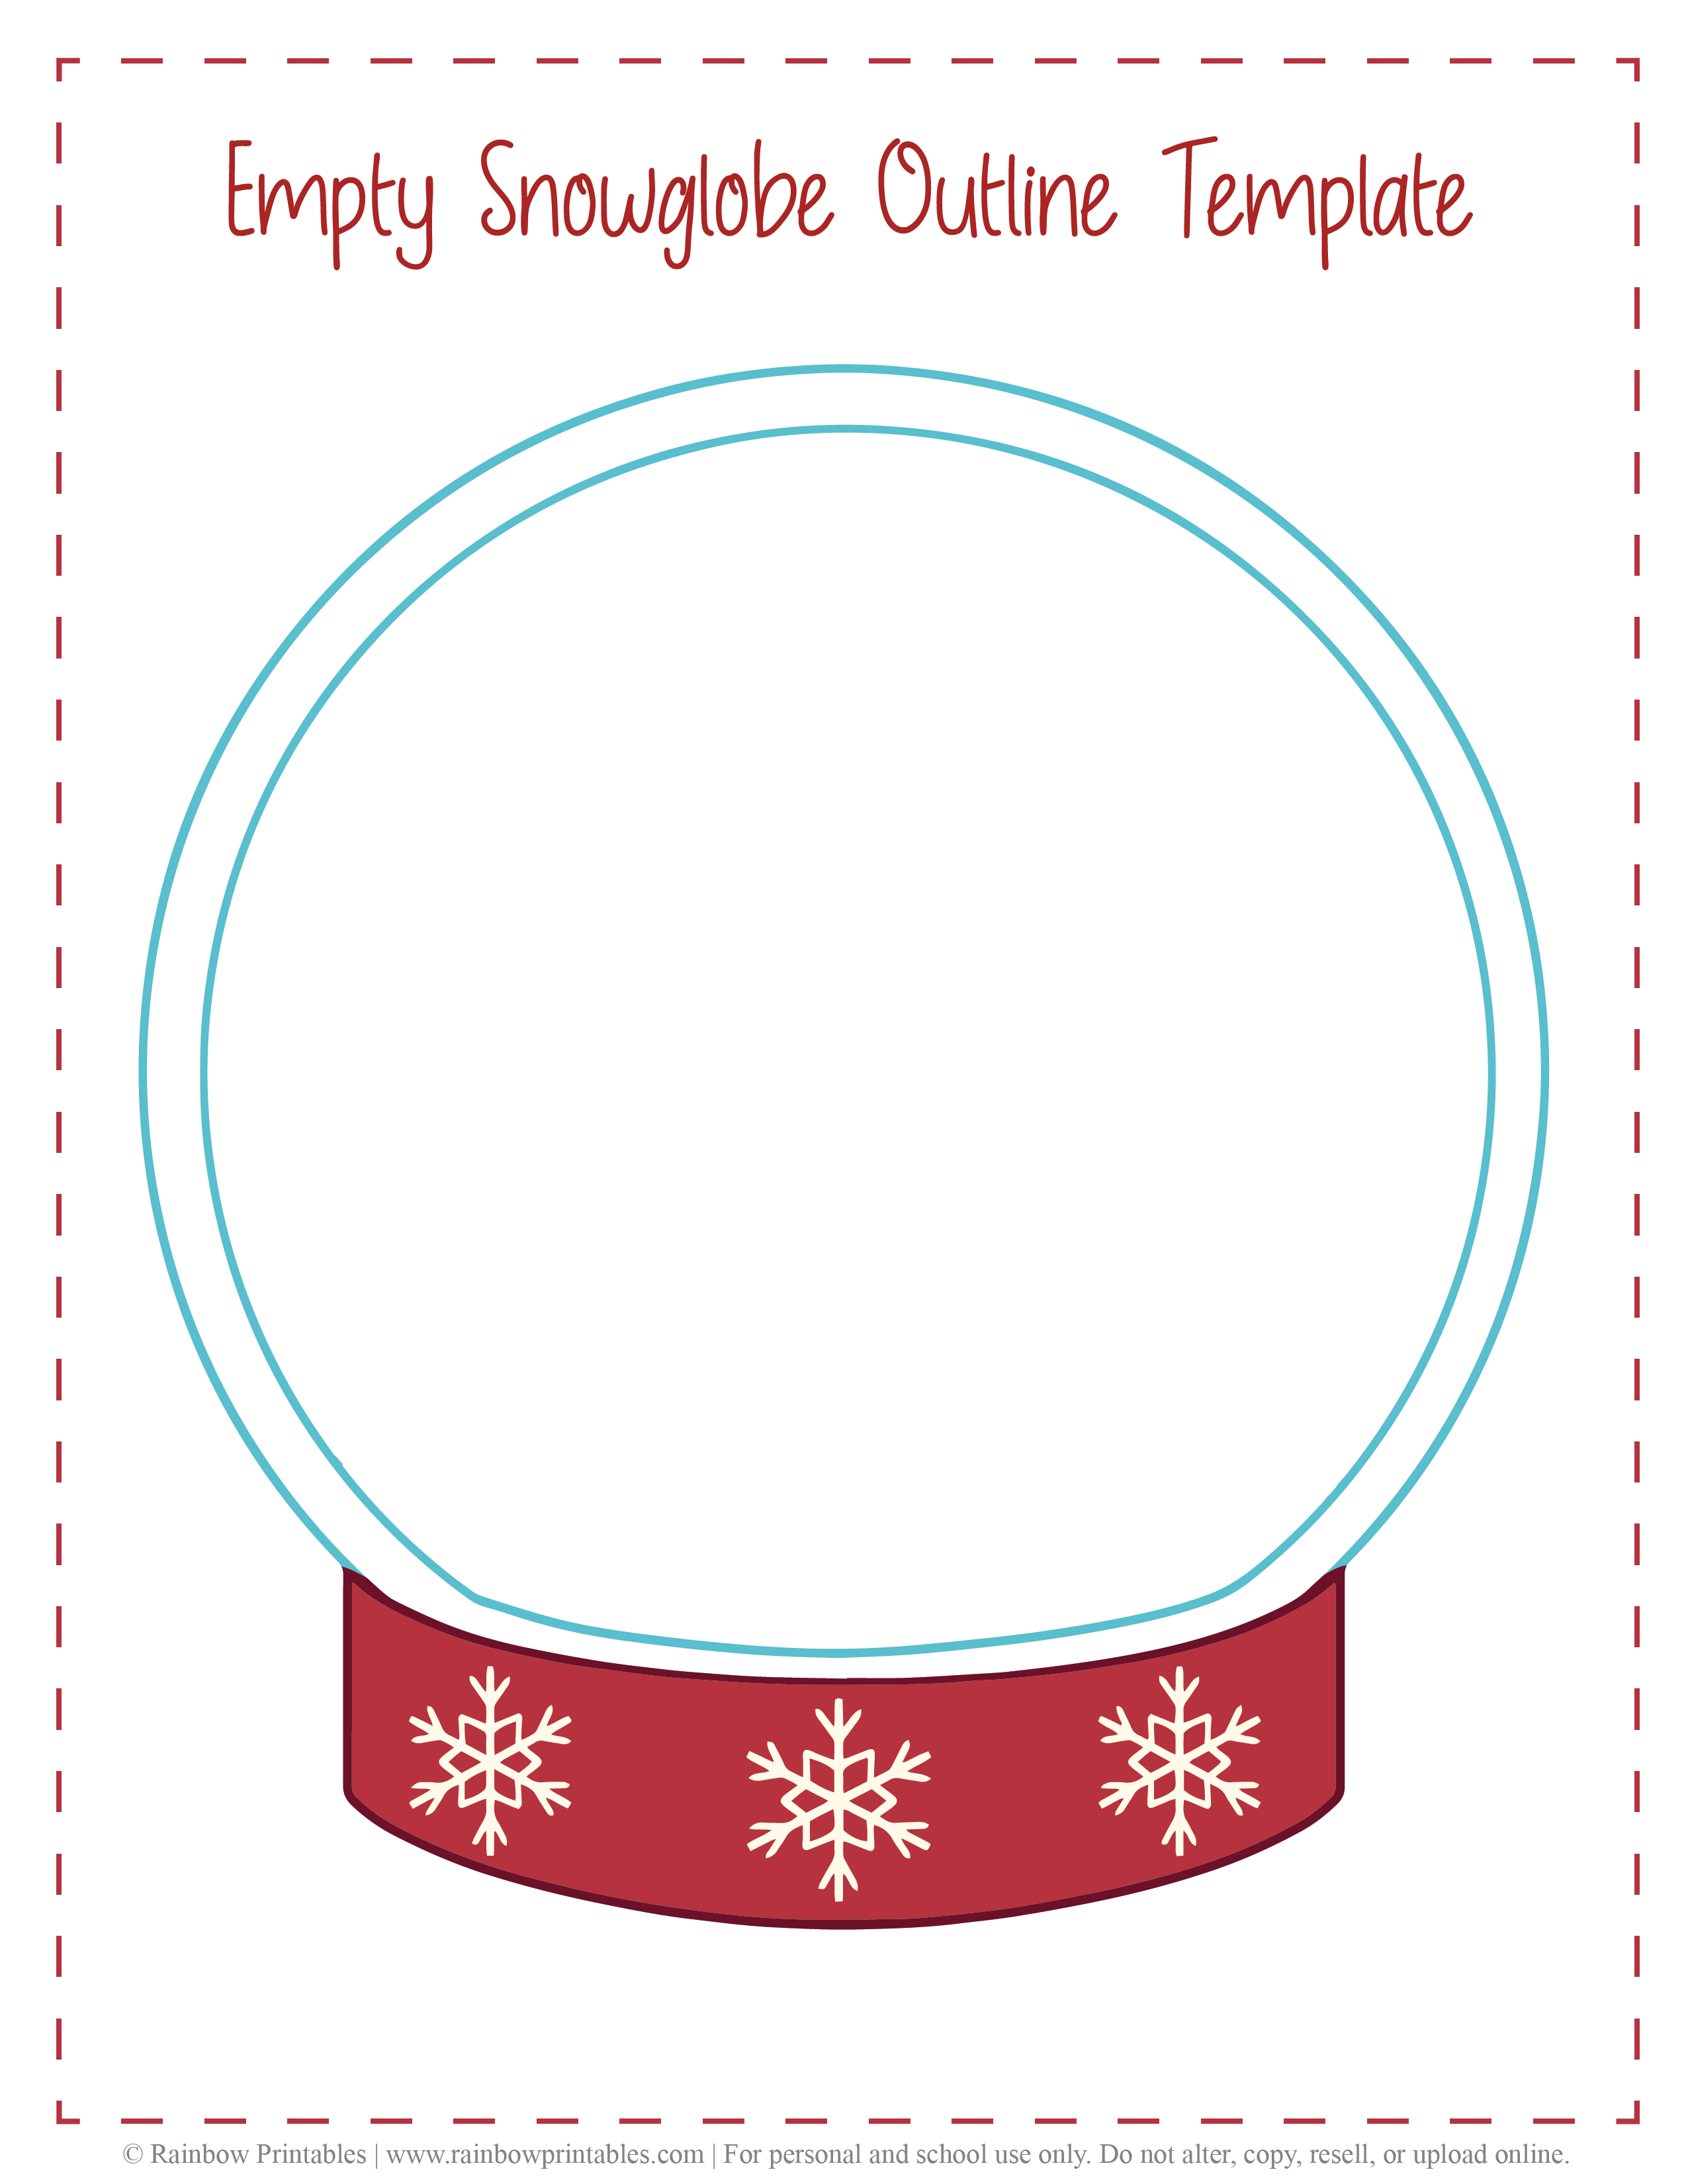 Empty Snowglobe Outline Template Christmas Xmas Free Printable Freebie Arts Crafts for Kids-01-02